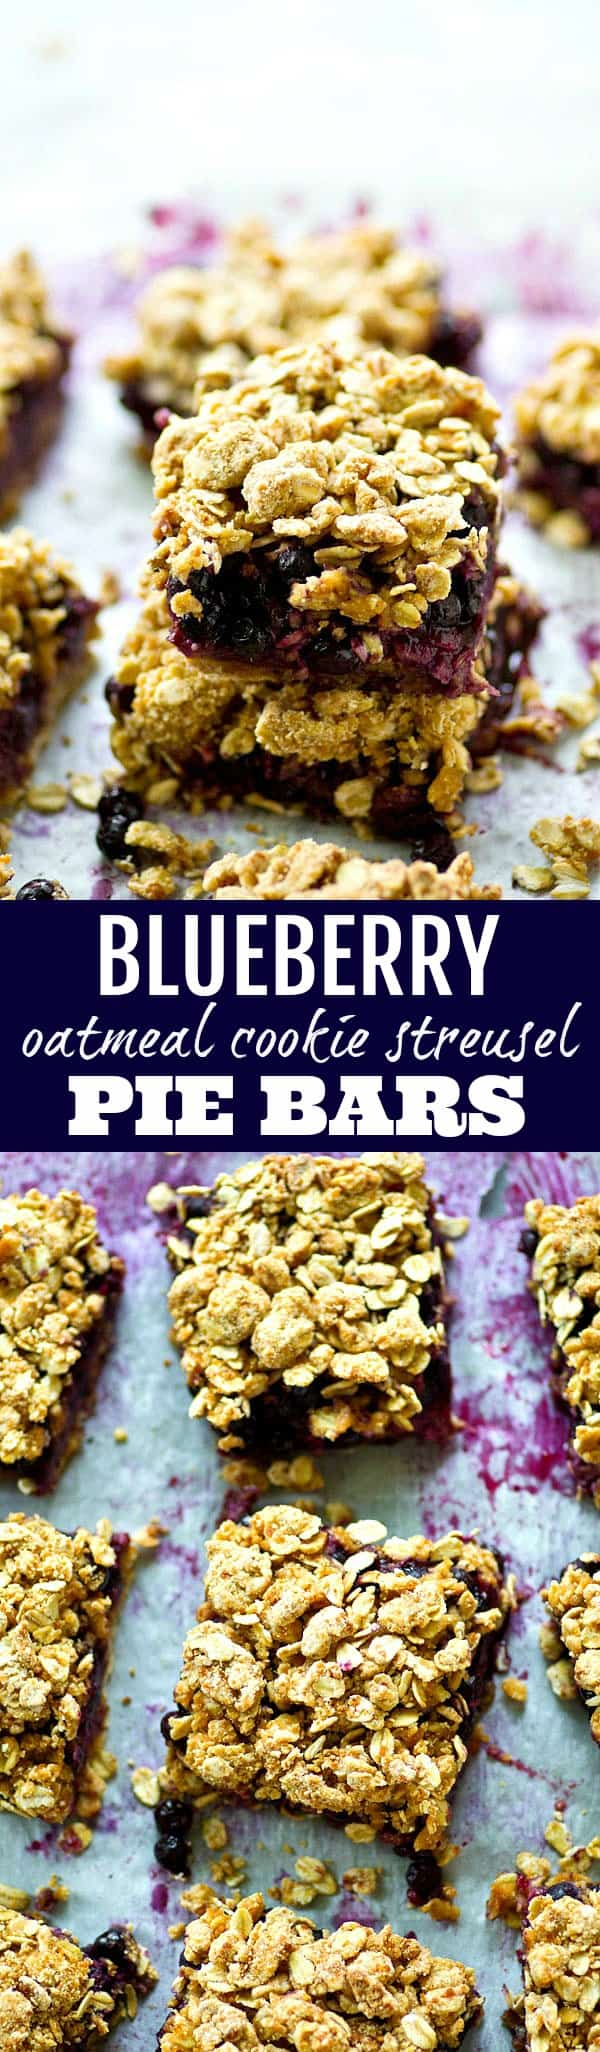 A juicy blueberry filling and oatmeal cookie-like streusel topping makes these blueberry oatmeal cookie streusel pie bars a perfect no-fuss summer dessert, snack, or even breakfast!